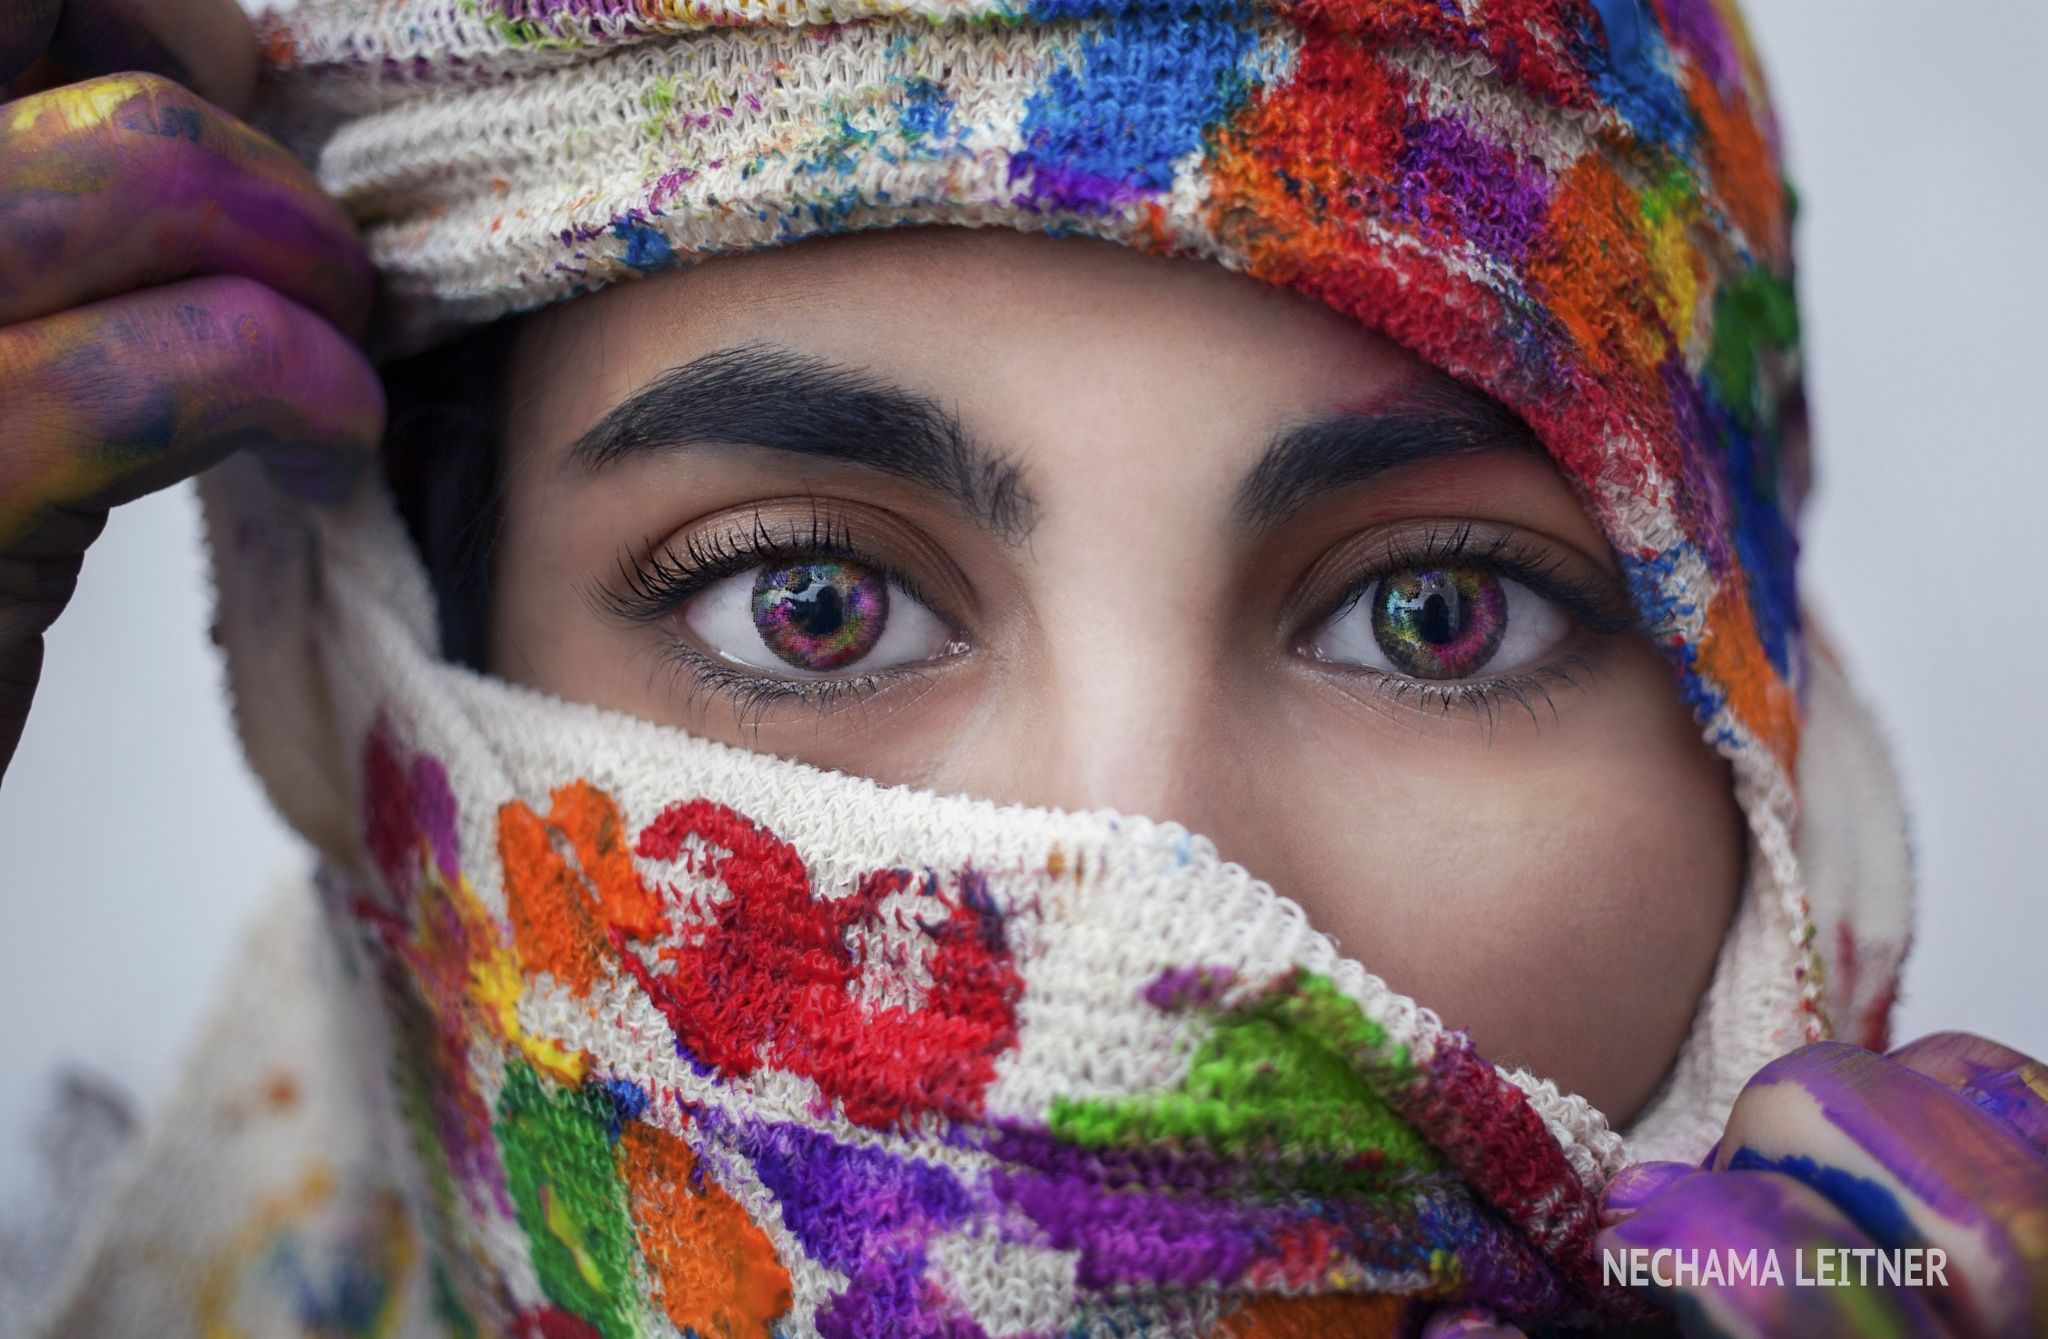 Color by Nechama Leitner on 500px